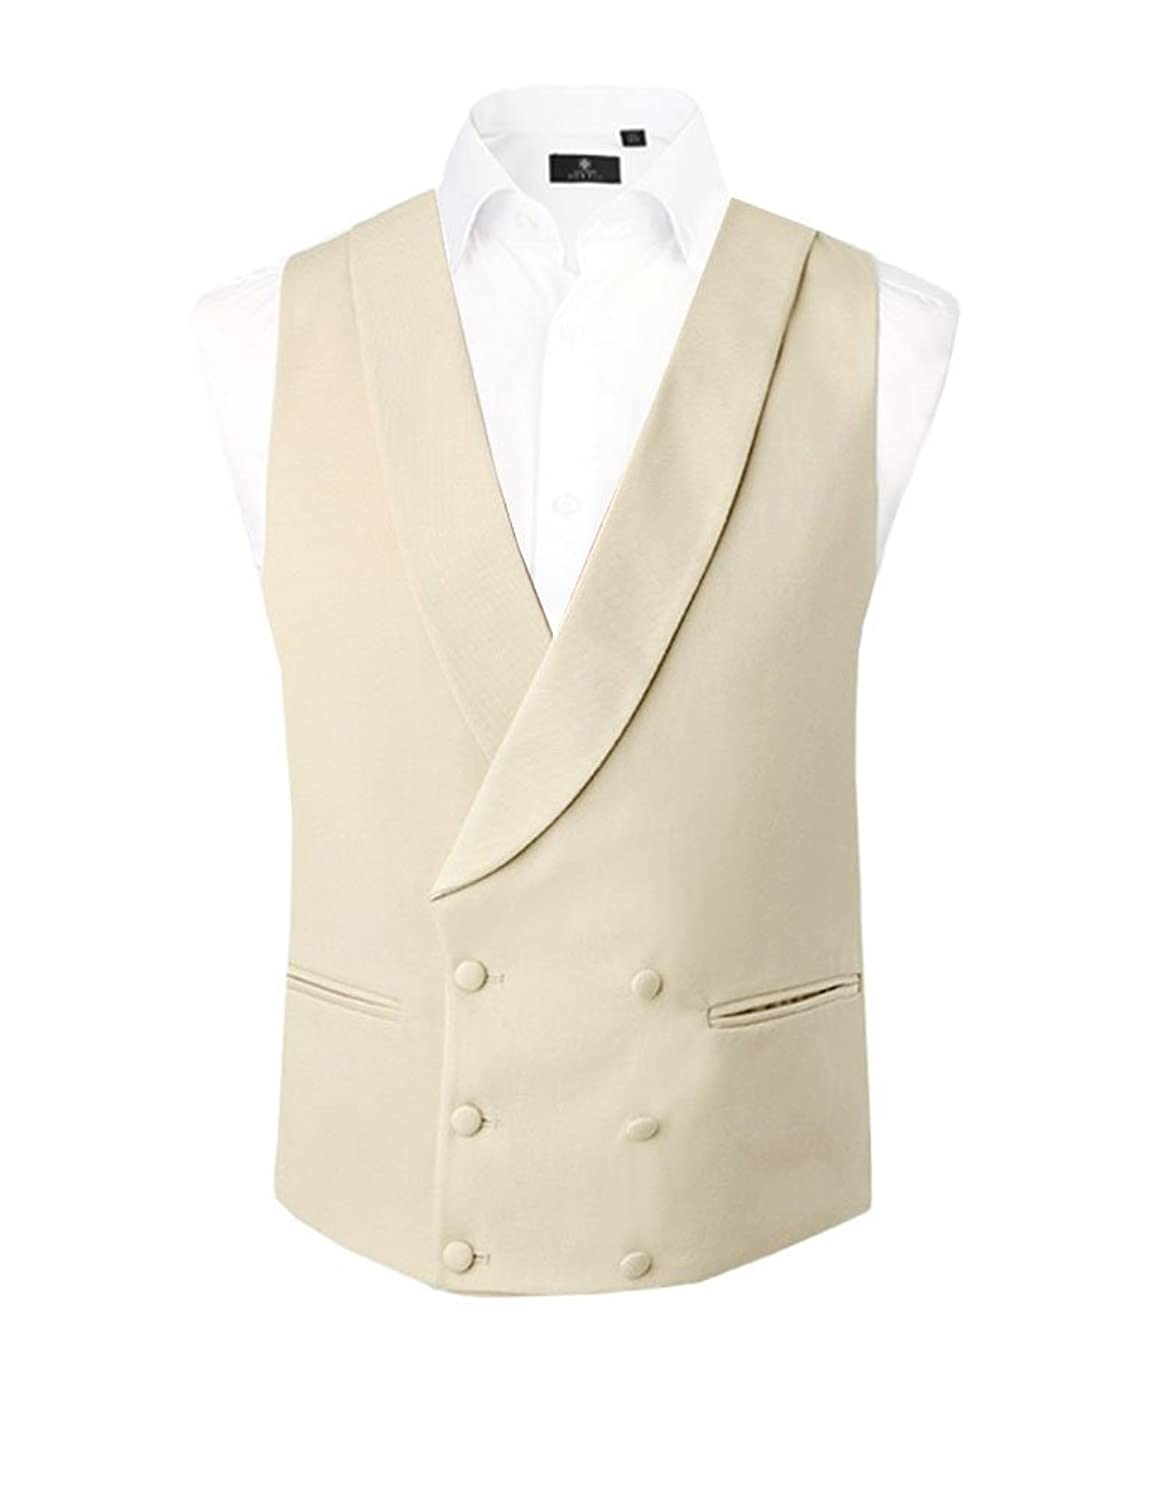 1920s Mens Formal Wear: Tuxedos and Dinner Jackets Mens Gold/Buff Double Breasted Shawl Lapel Morning Suit Waistcoat £39.99 AT vintagedancer.com